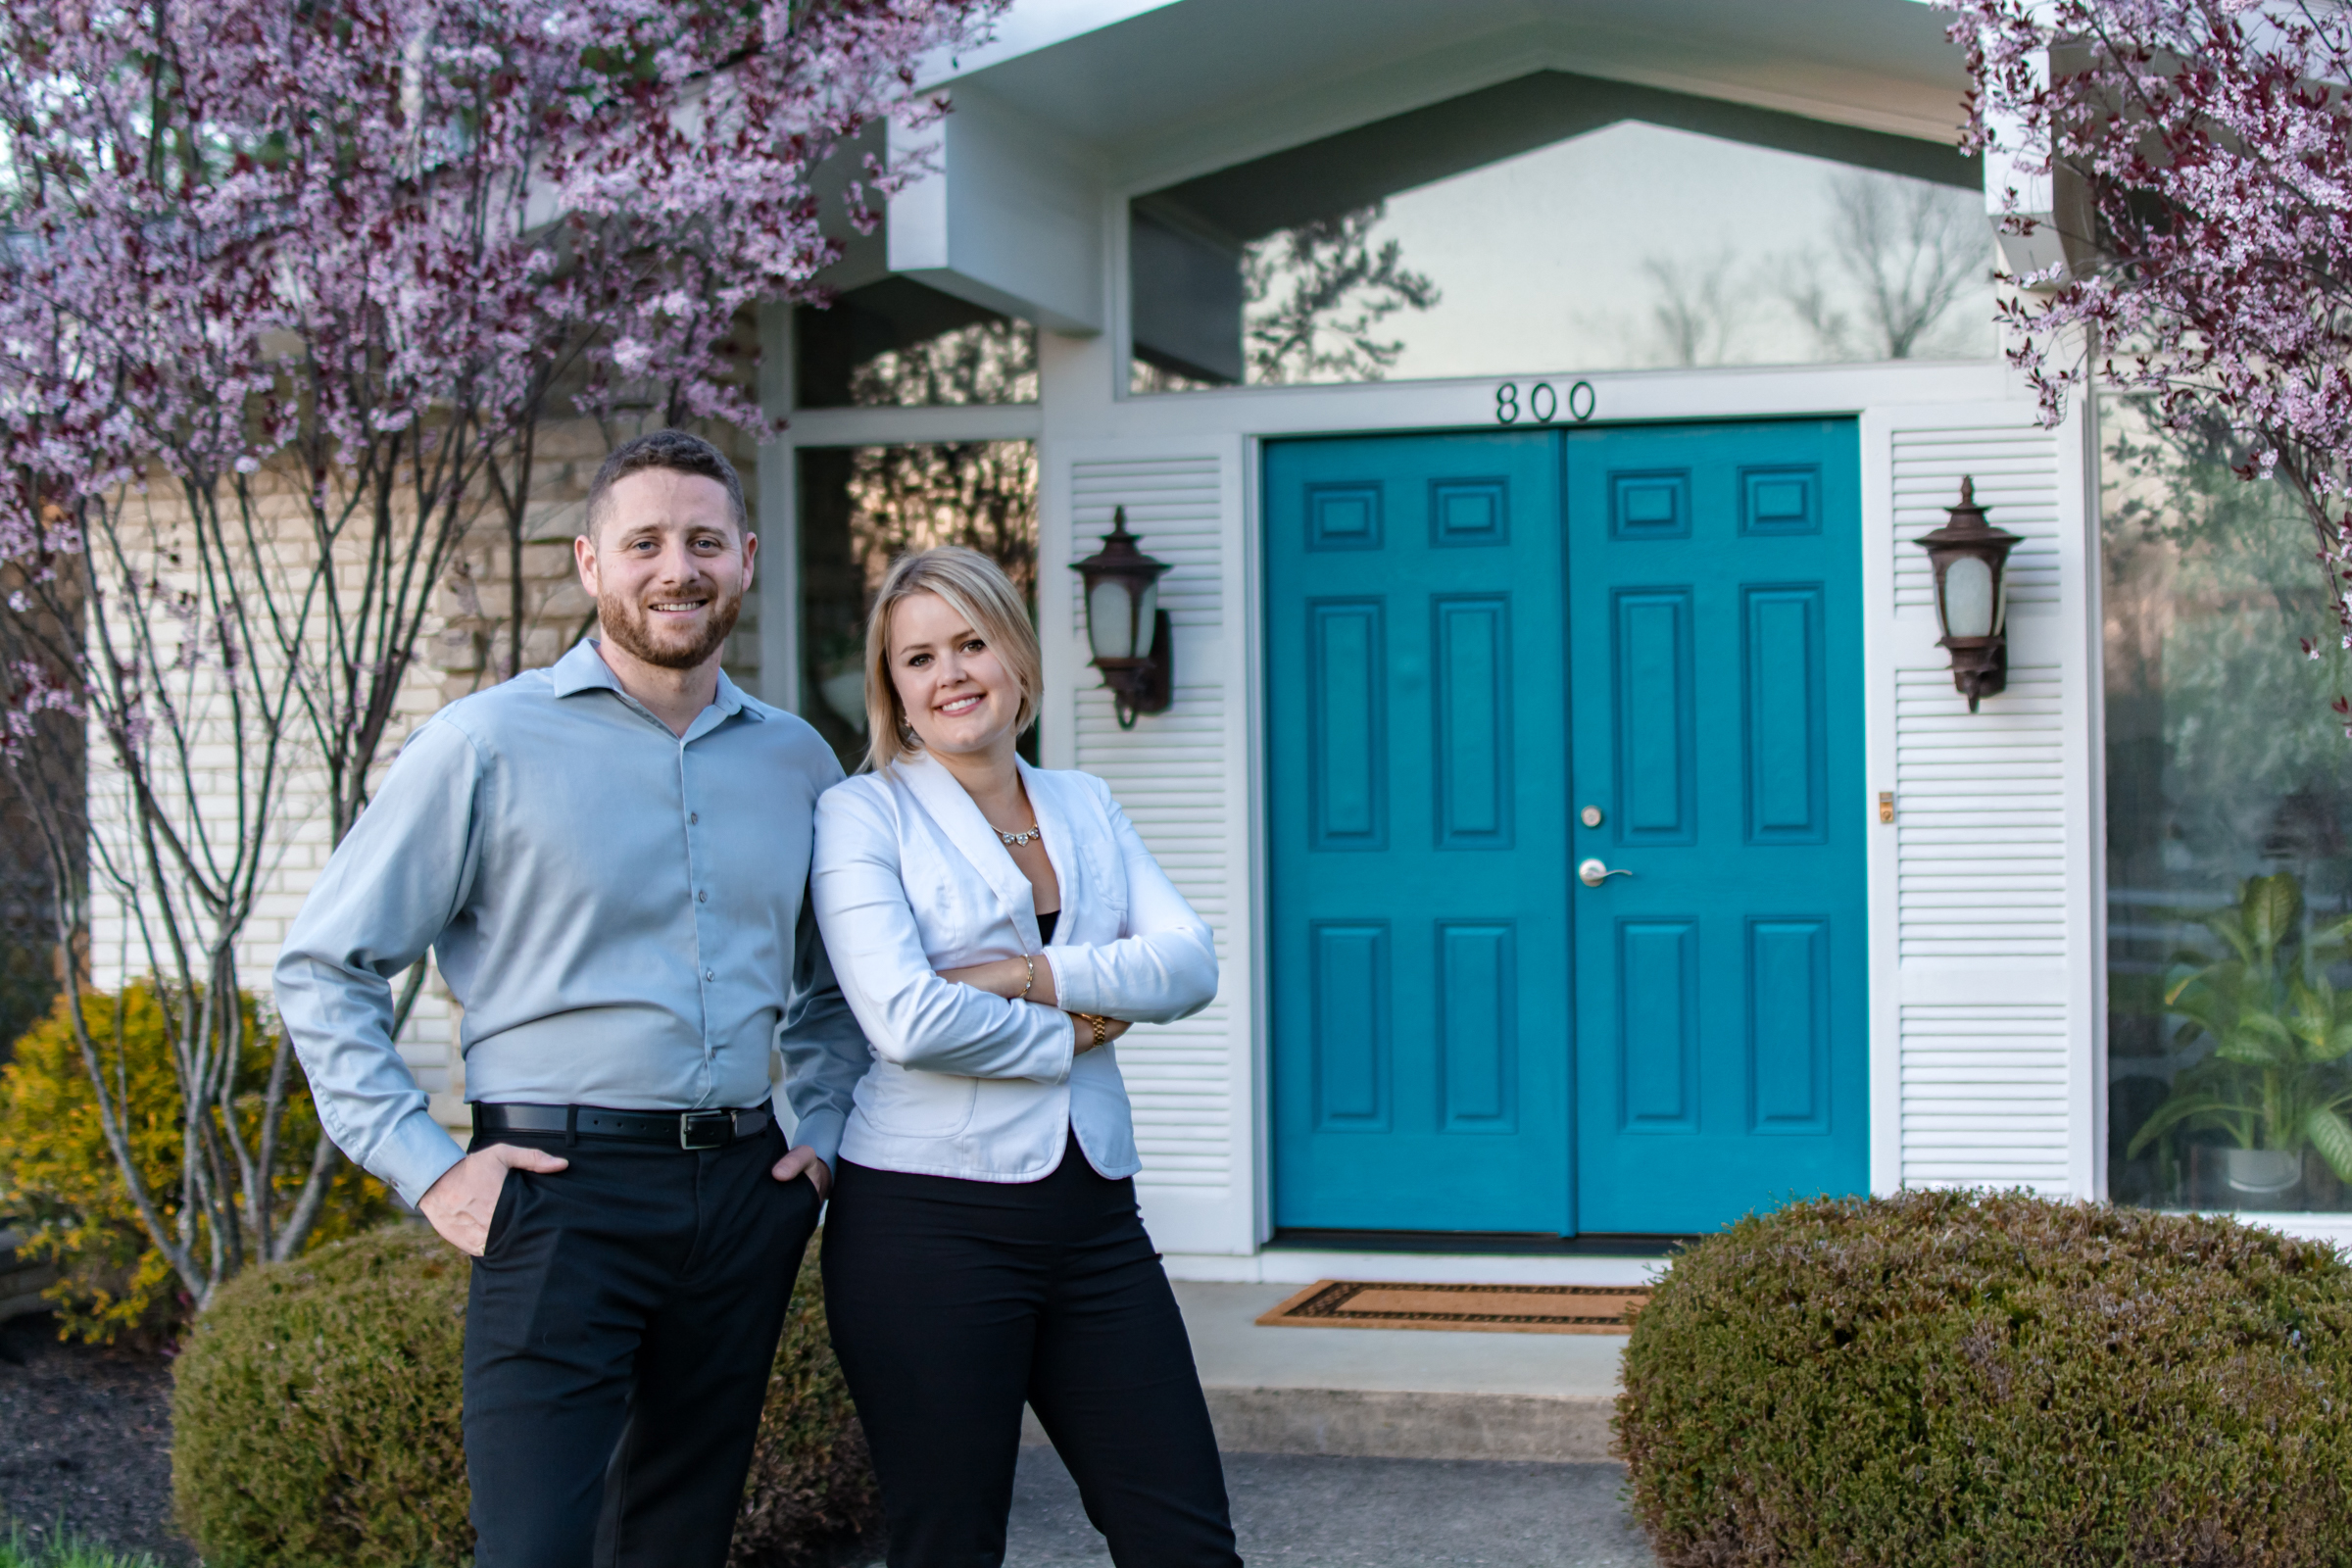 Real Estate Agents in front of Flat Rate Listed Home